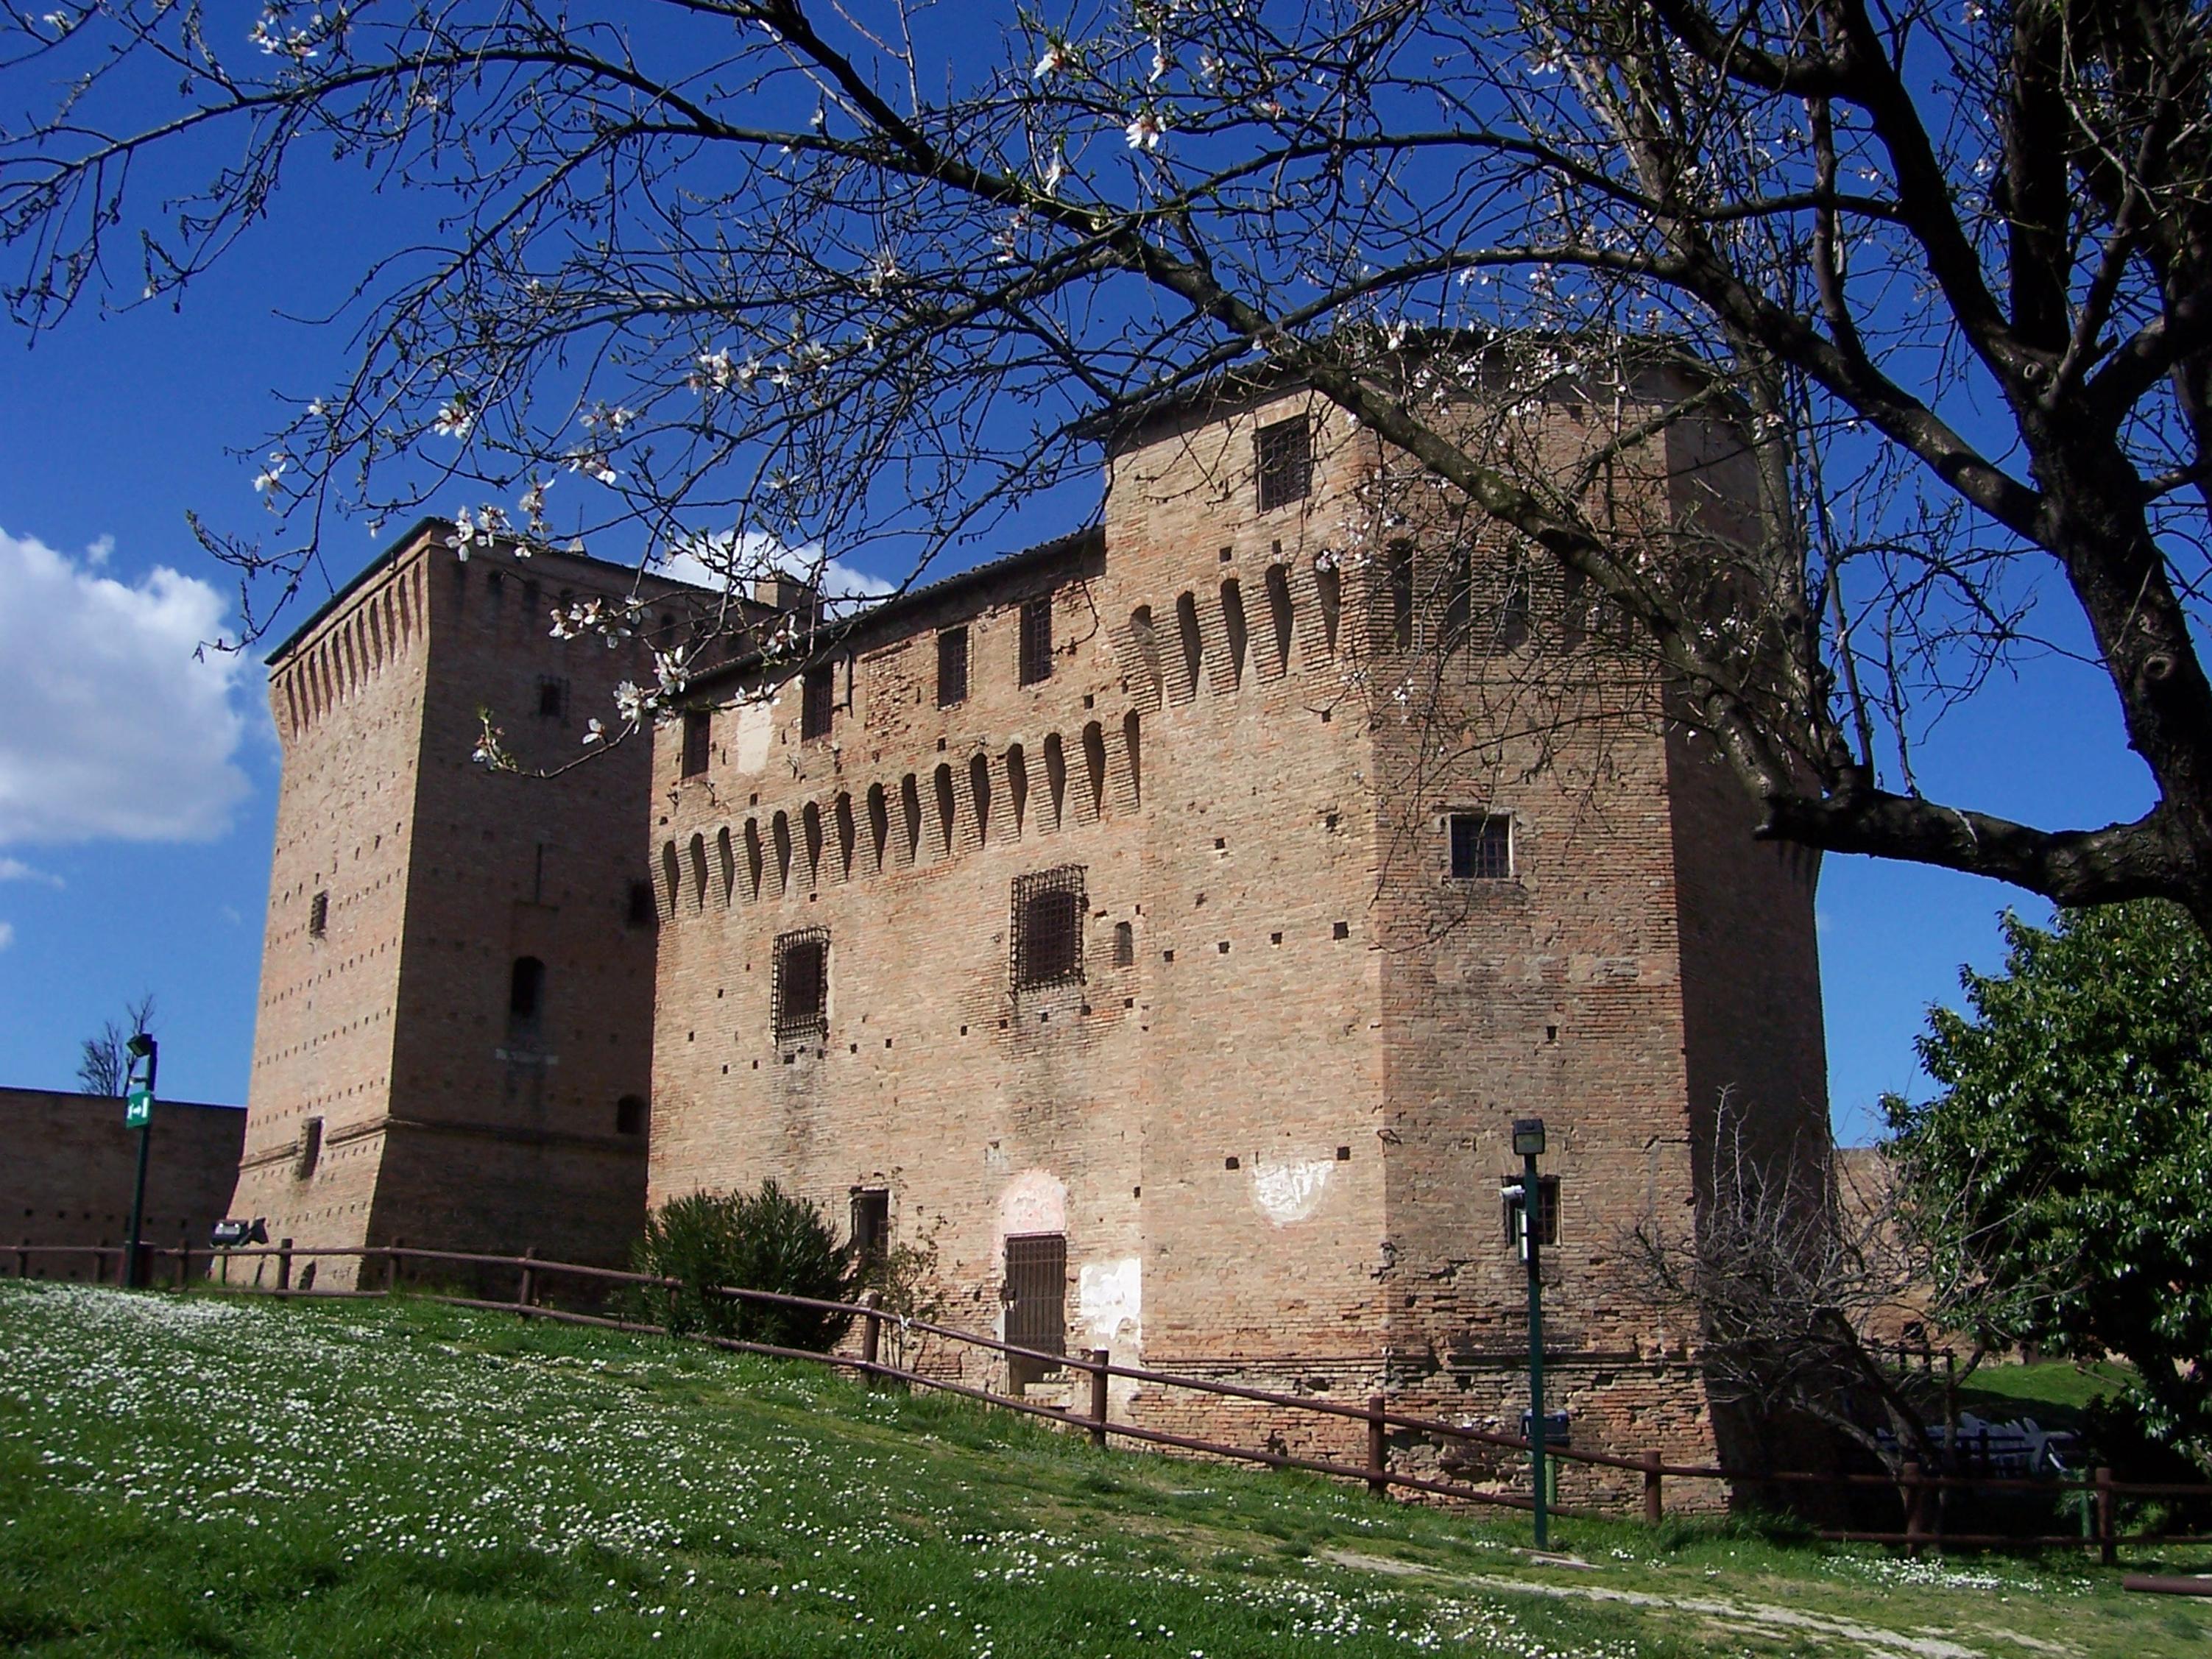 Places of torture in Italy: the Rocca Malatestiana